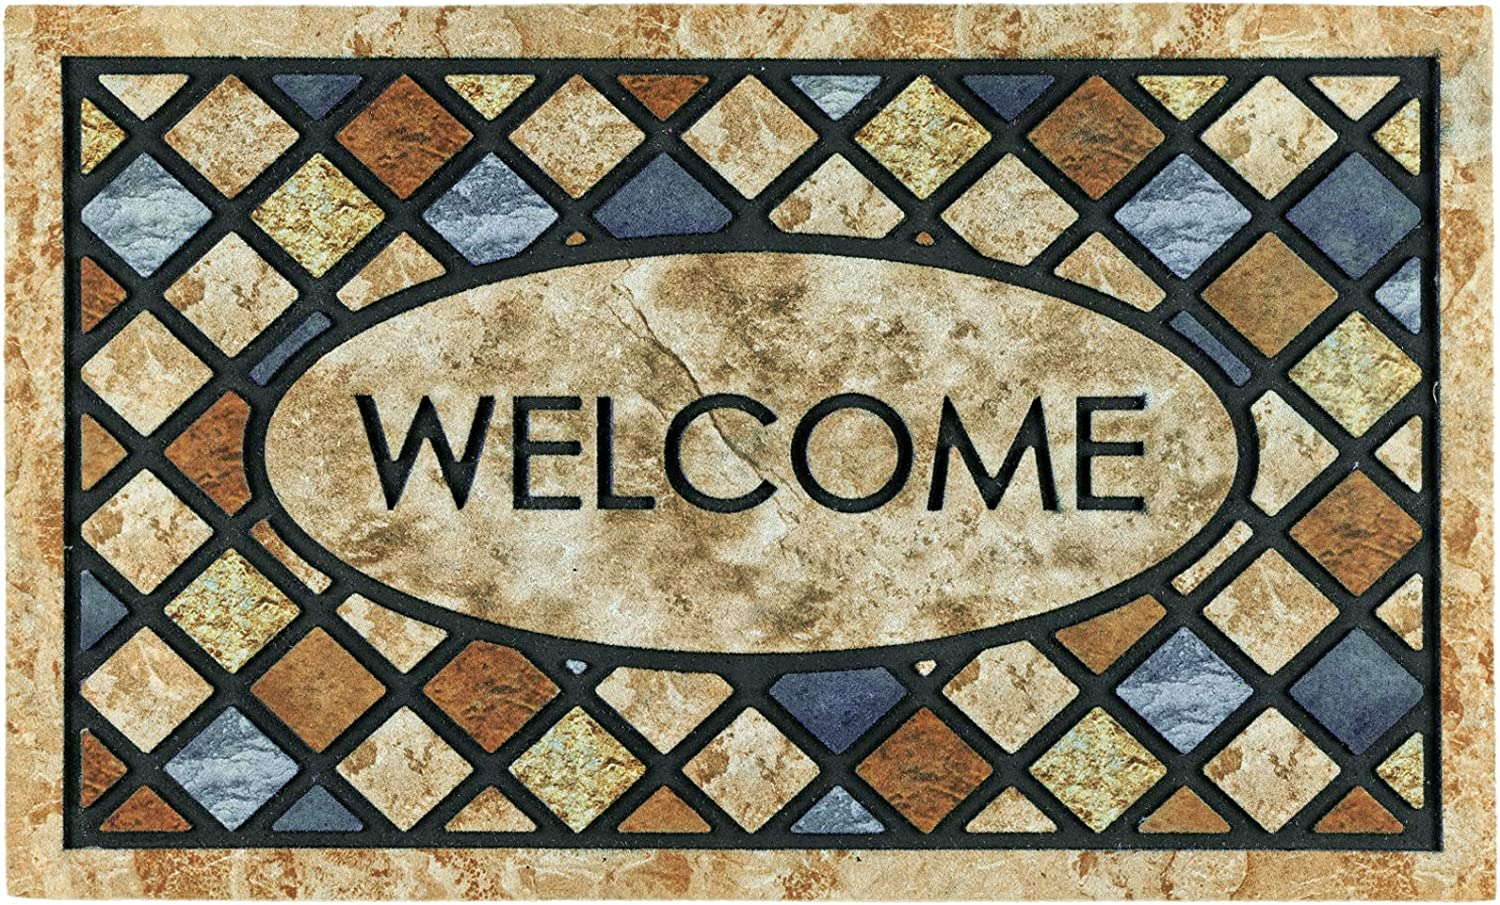 CHICHIC Door Mat Welcome Mat 17x 30 Inch Front Door Mat Outdoor for Home Entrance Outdoor Mat for Outside Entry Way Doormat Entry Rugs, Heavy Duty Non Slip Rubber Back Low Profile, Welcome